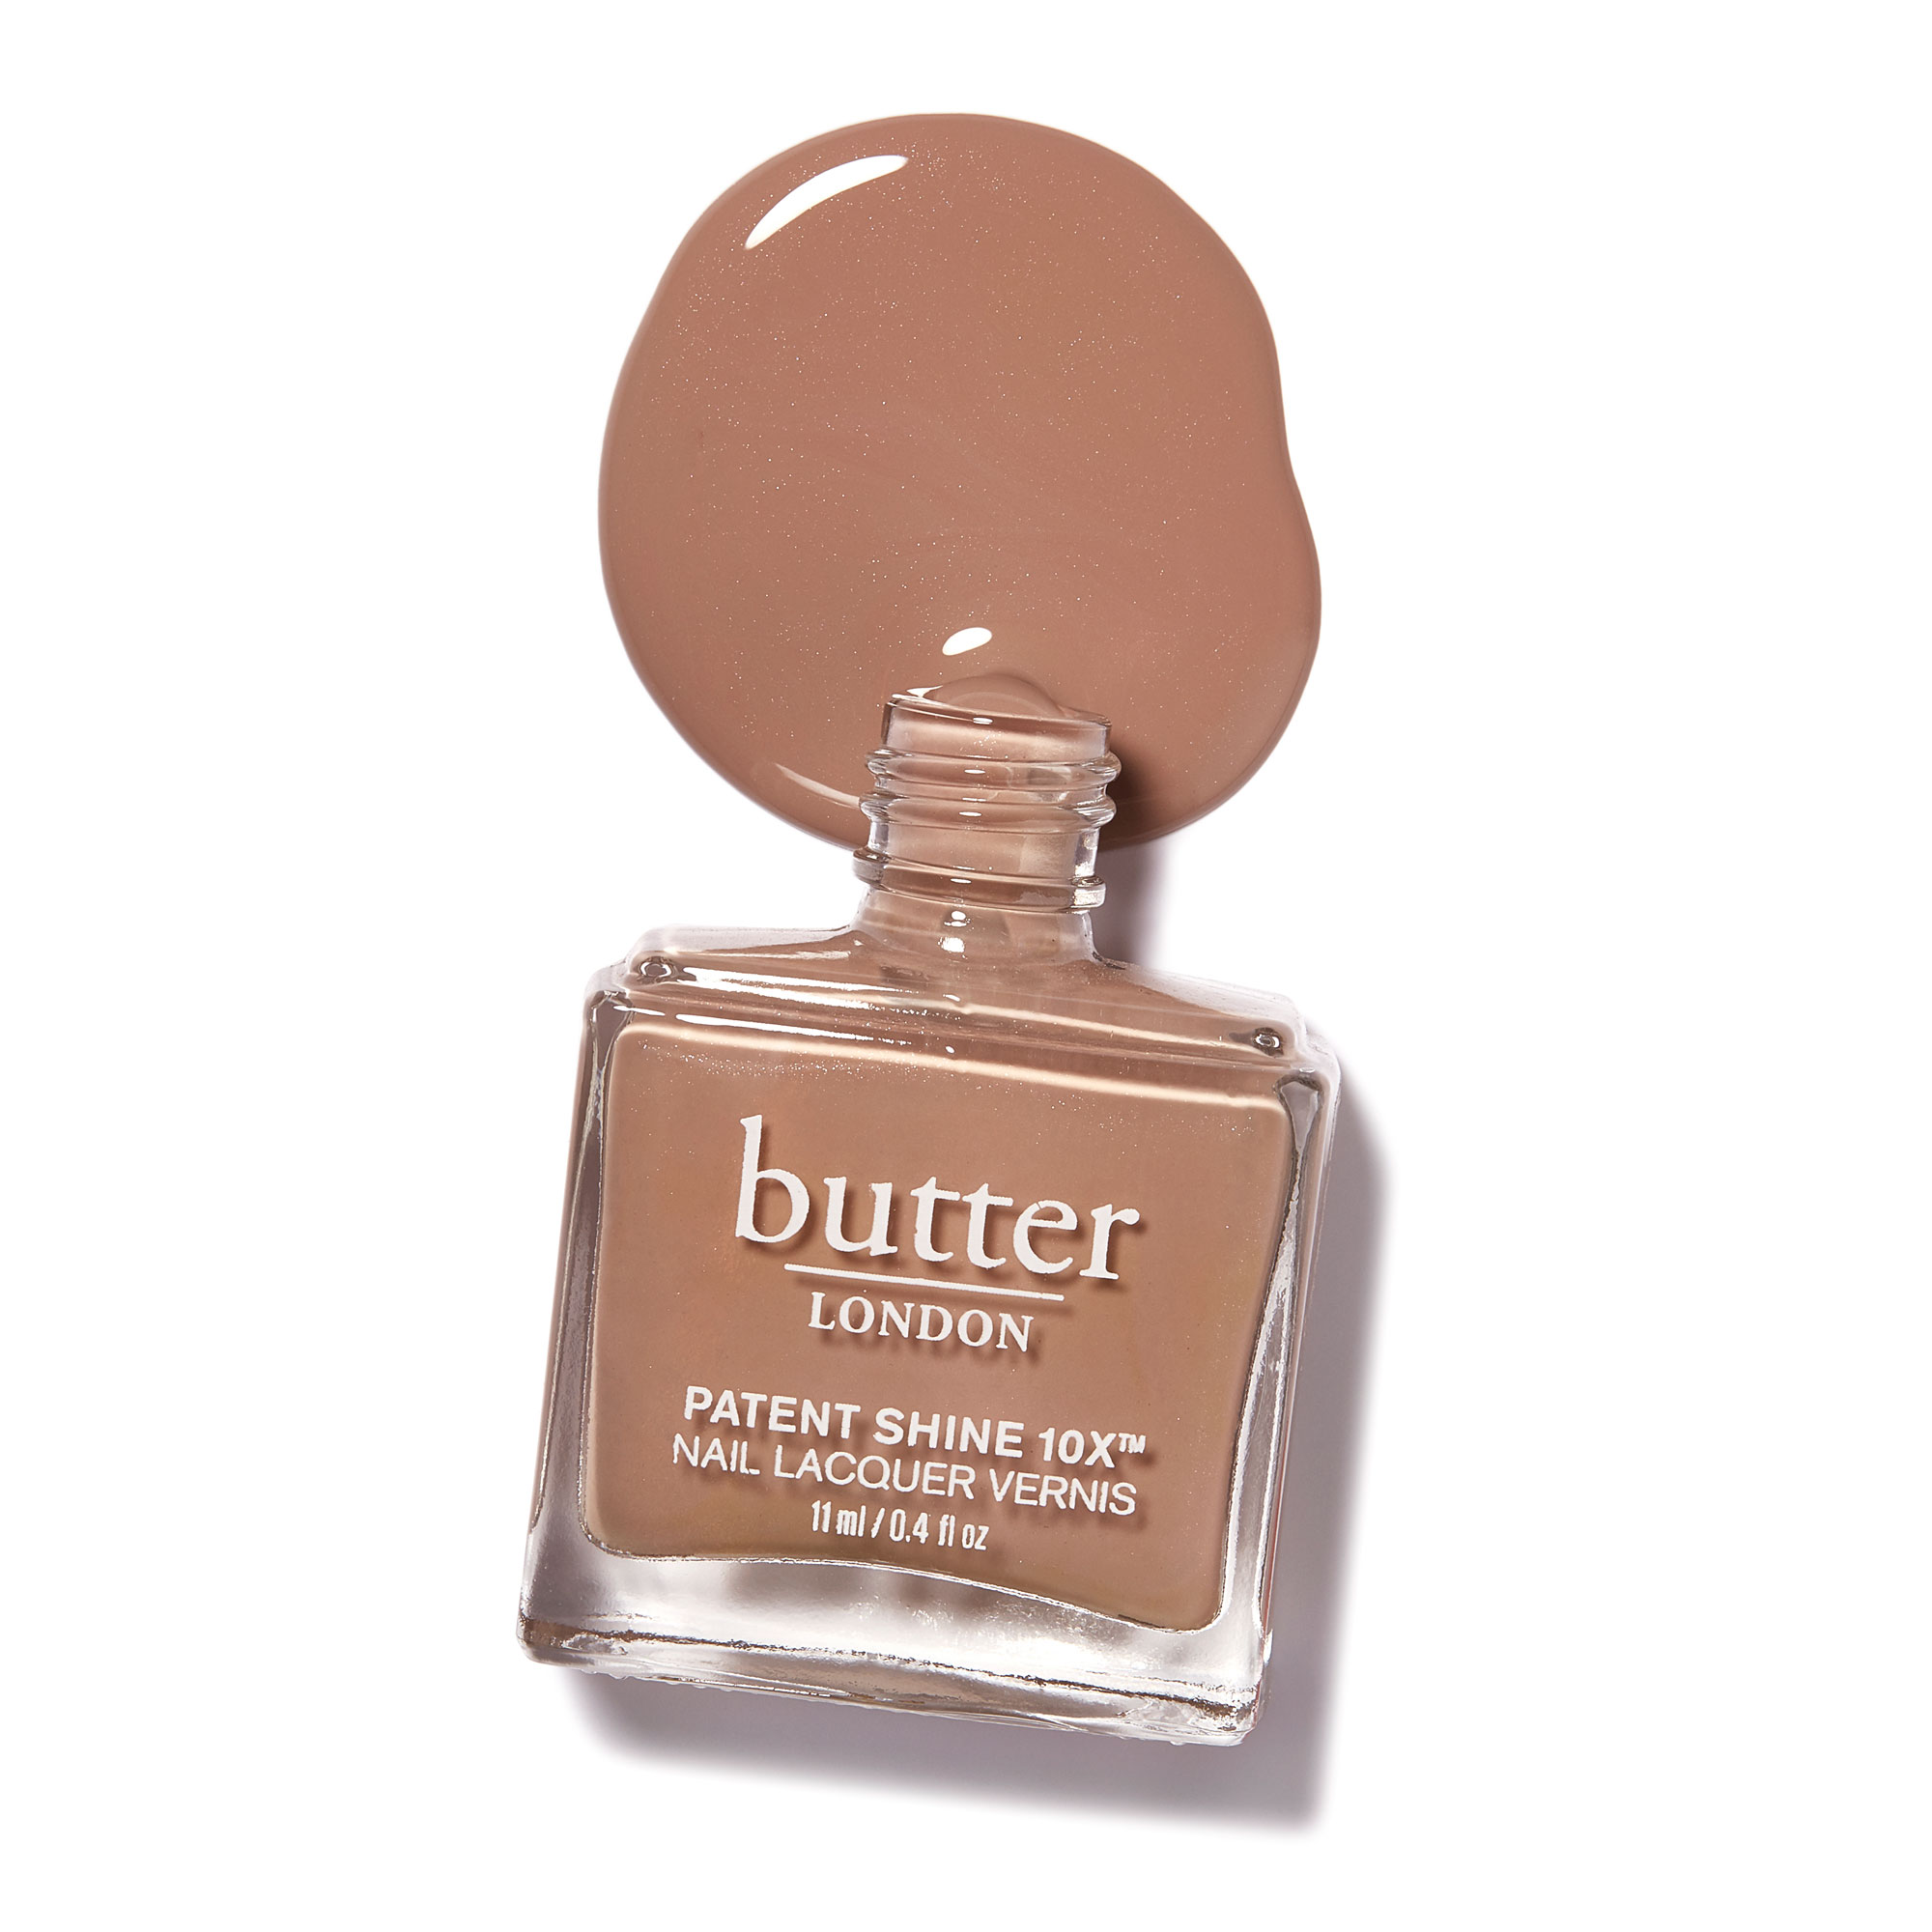 BUTTER NAIL LACQUER IN YUMMY MUMMY. Credit: Brian Henn